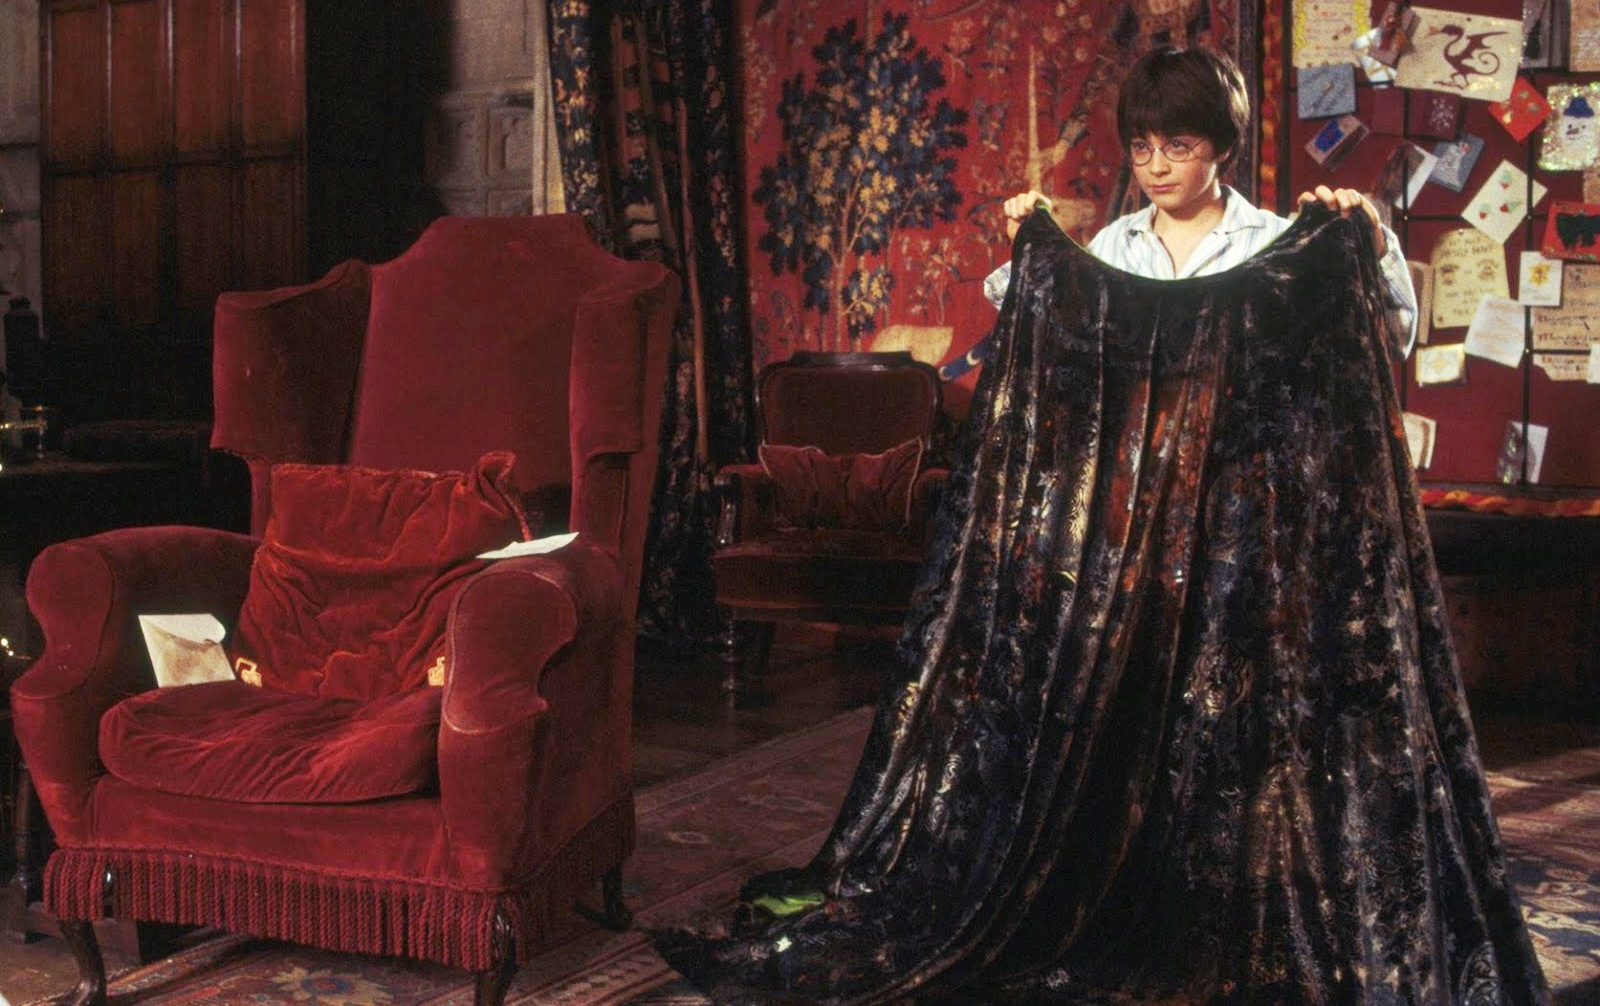 Invisibility cloak: Thin Harry Potter fabric design finally possible using dielectric materials